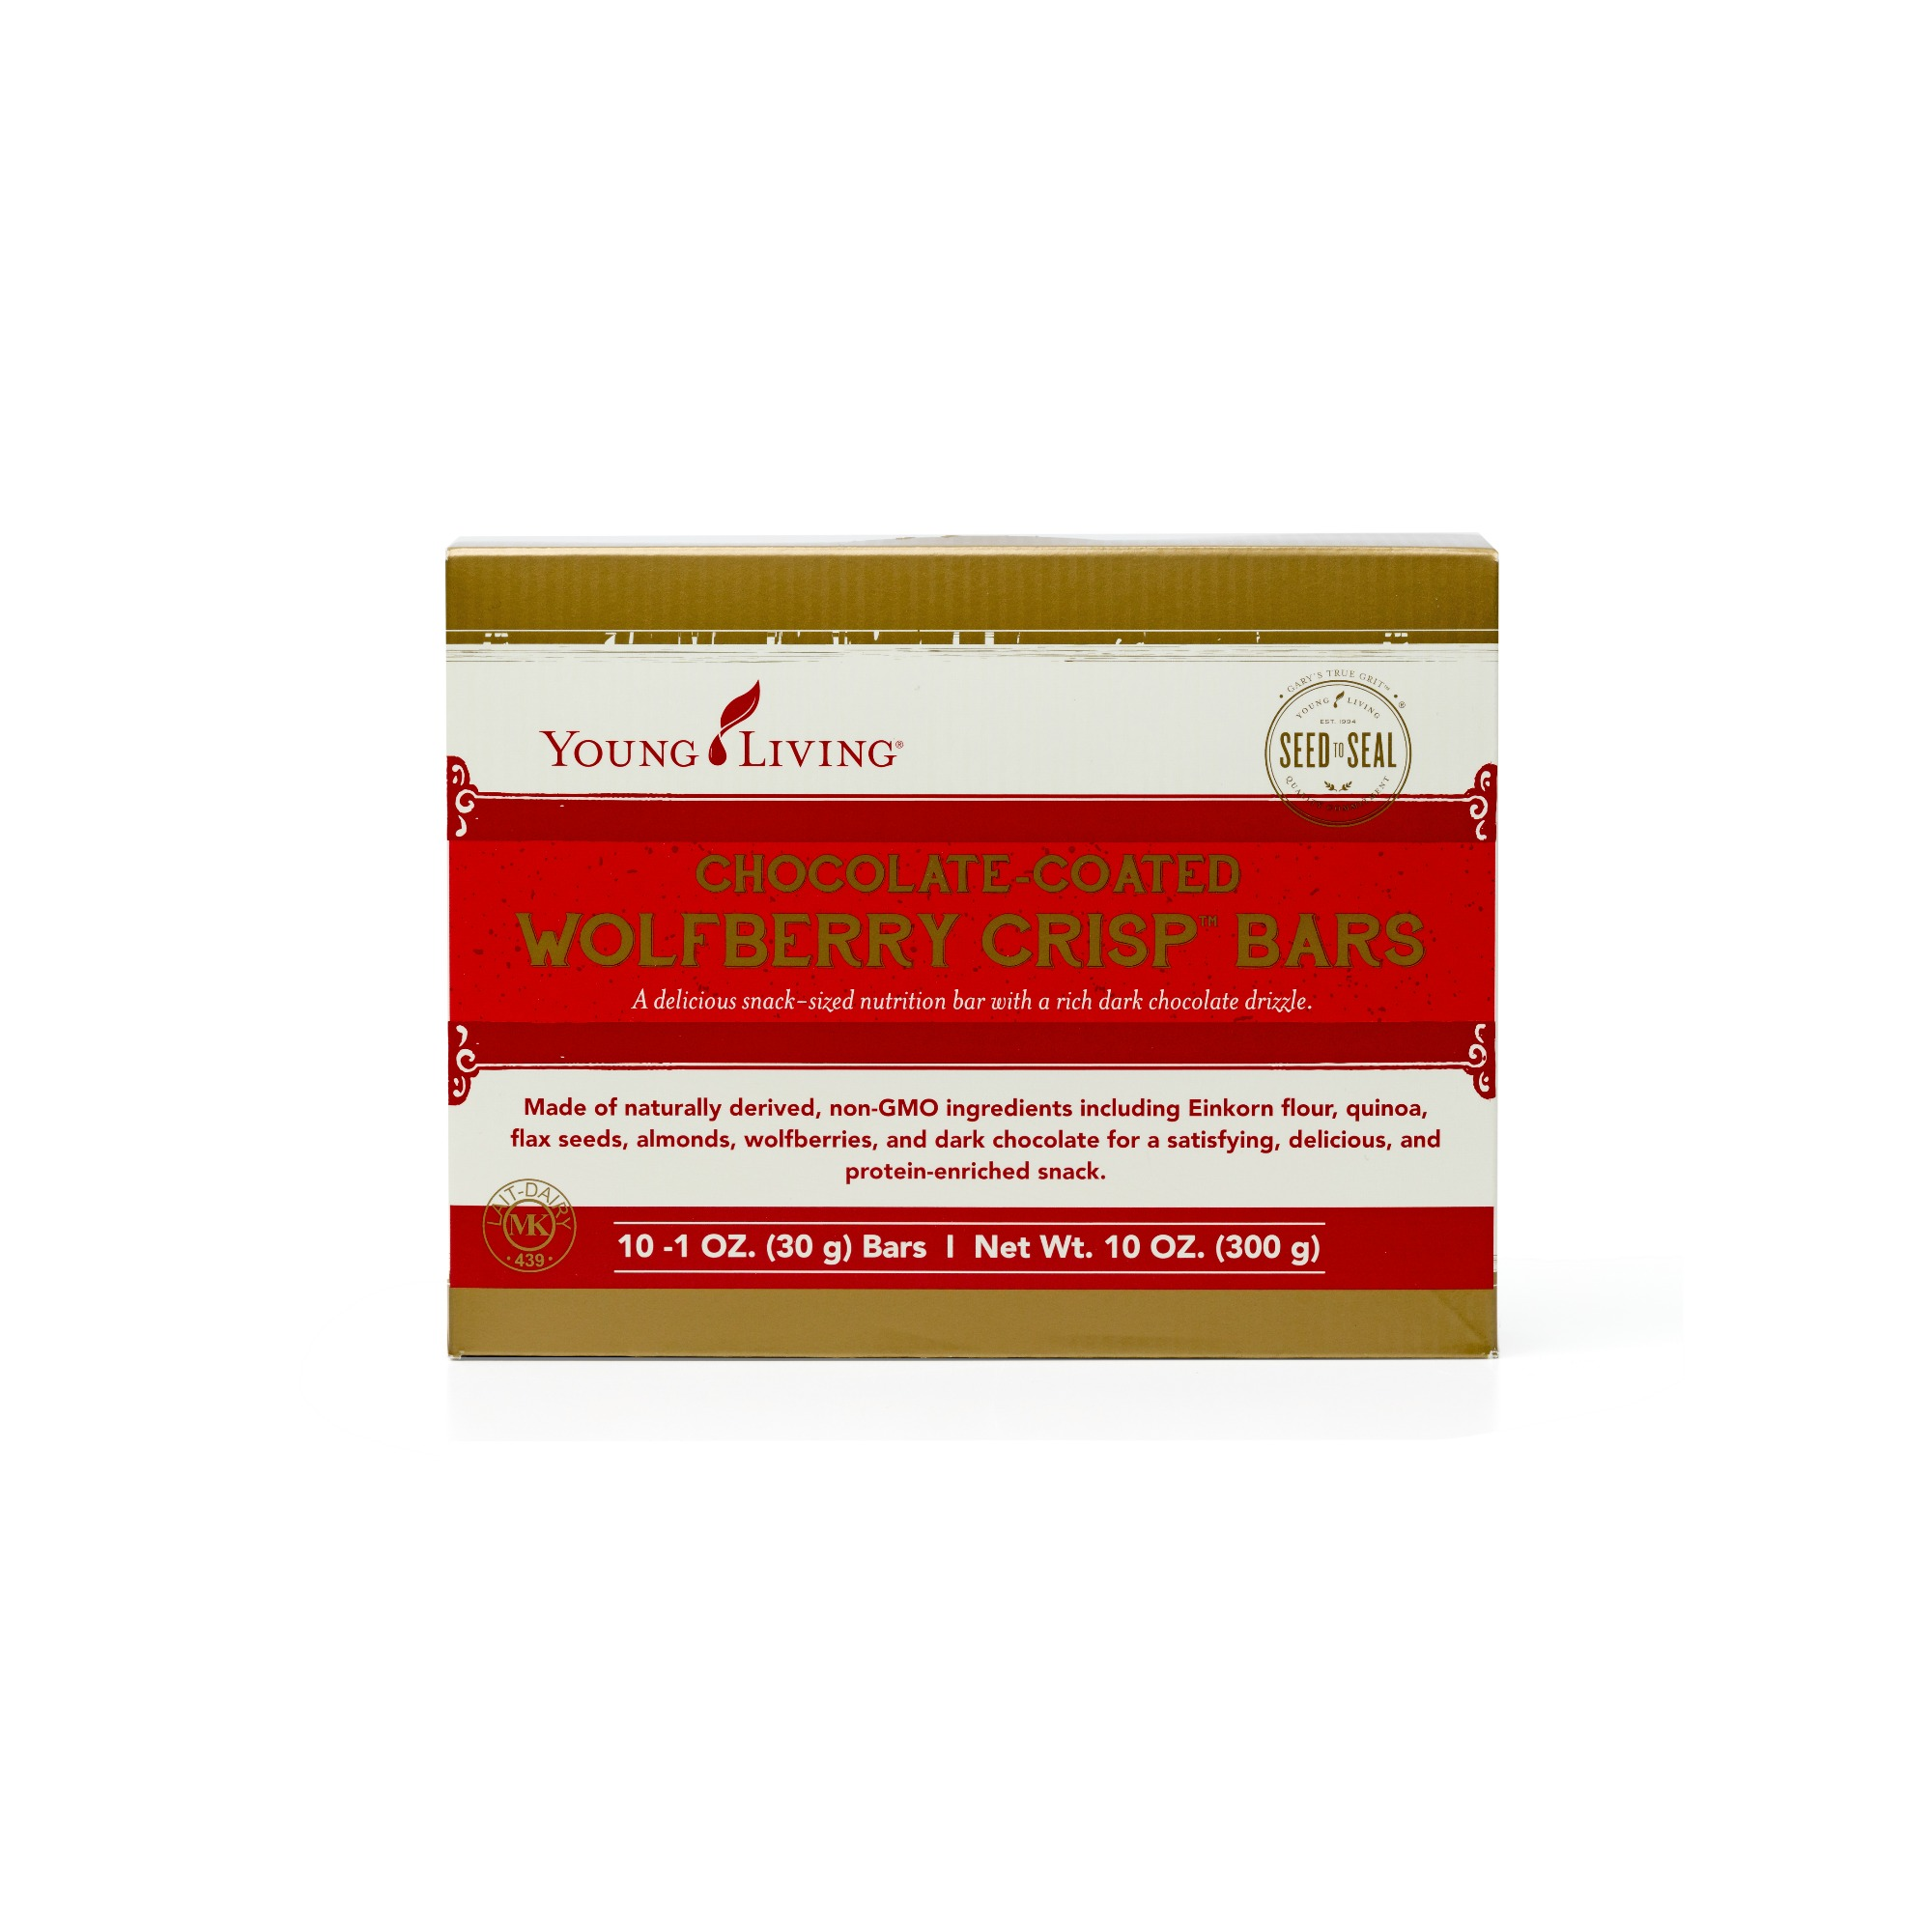 WOLFBERRY CRISP BARS - CHOCOLATE    These bars combine wholesome grains, fruits, nuts, and whey into a convenient snack-sized bar that is the perfect to take on the go. Drizzled in rich dark chocolate and flavored with sweet coconut and wolfberries, these taste like a decadent treat but are packed with satisfying nutrition. Perfect for an on-the-go bite, with ingredients that will keep you energized and full.   Click here   to learn more about this product.